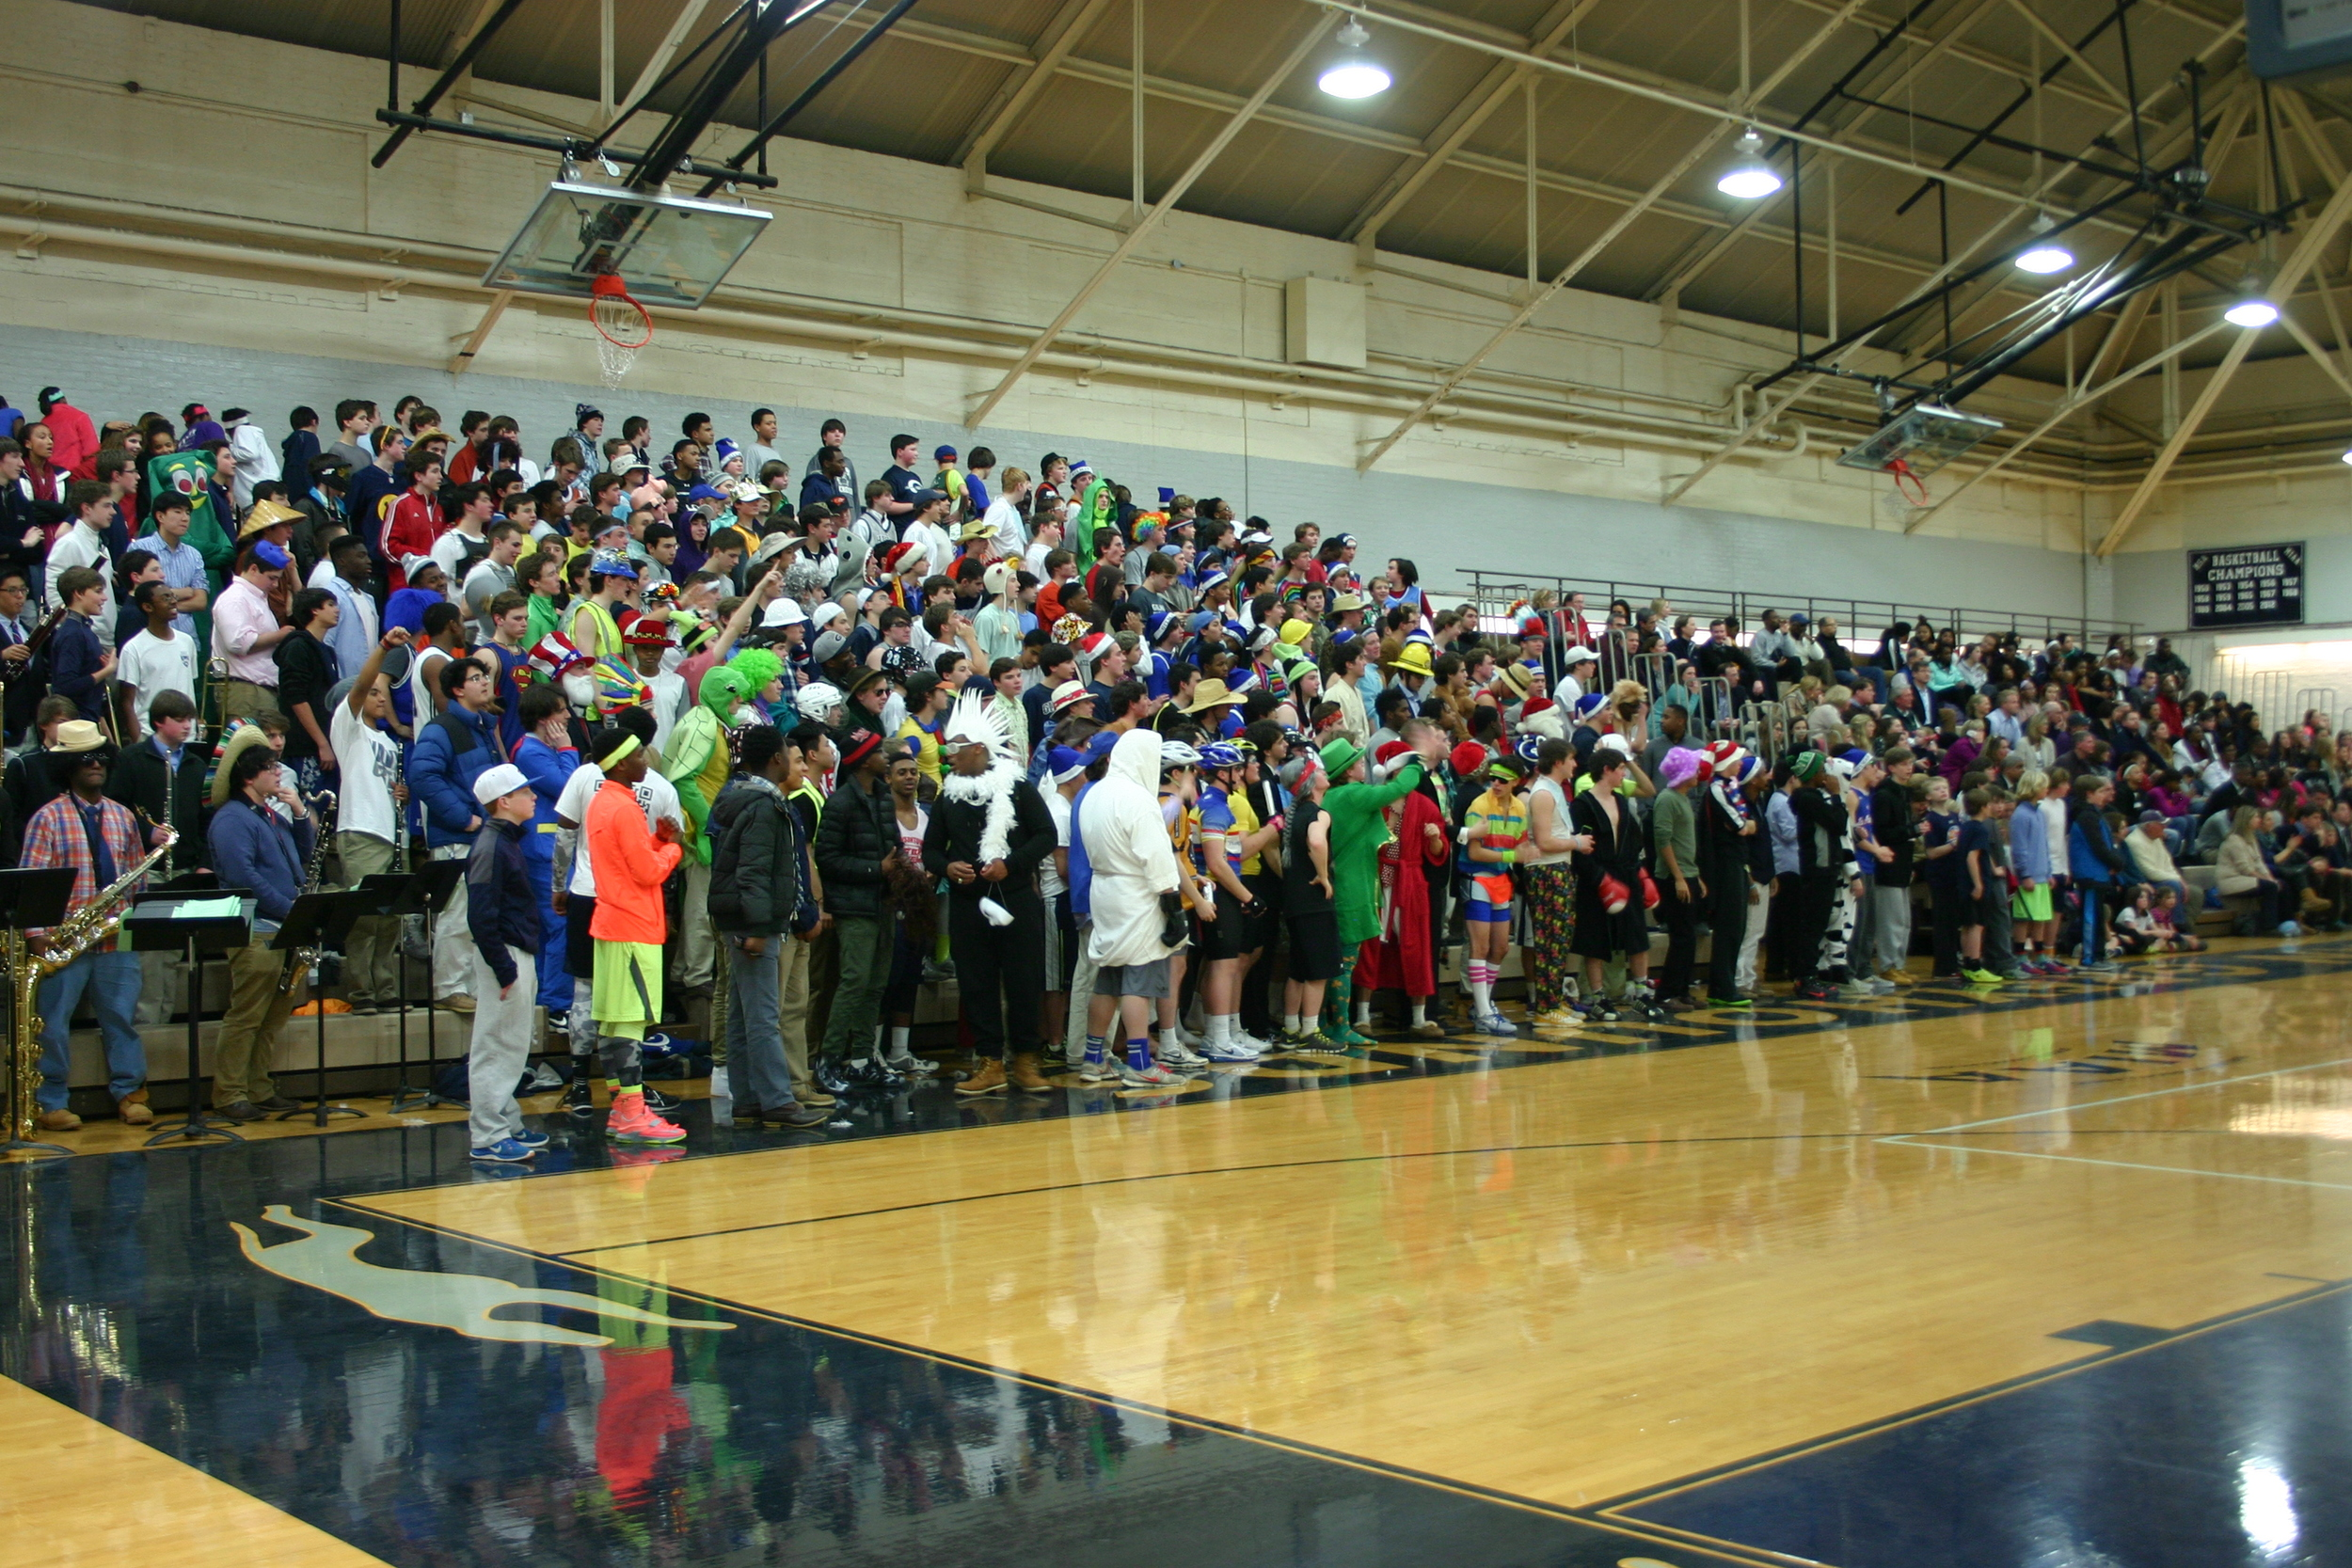 Gilman's 3rd Annual Silent Night Basketball Game.  Photo by Luke Wulff